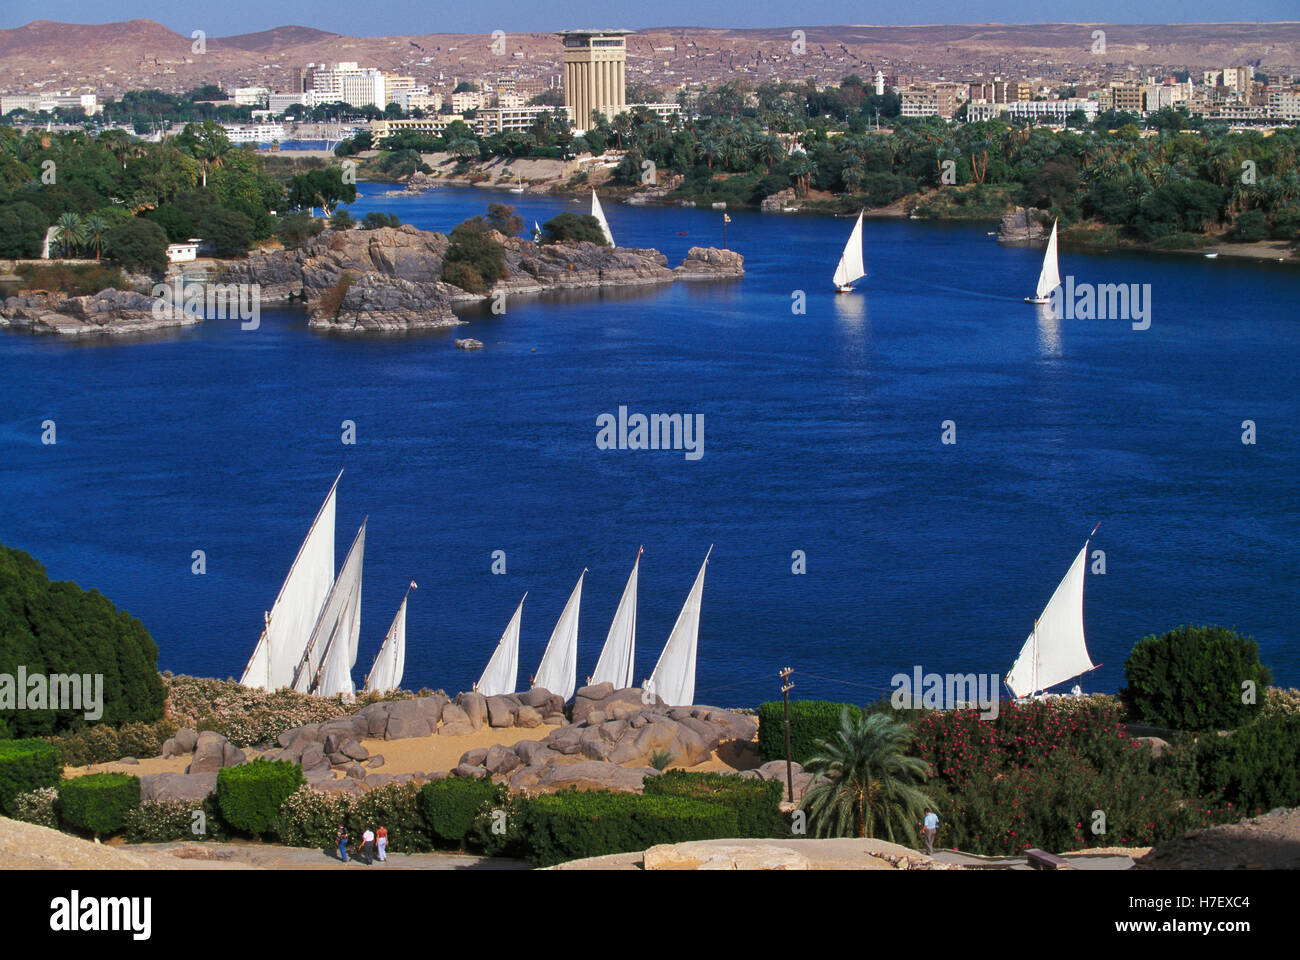 Feluccas on River Nile at Aswan, Egypt Stock Photo